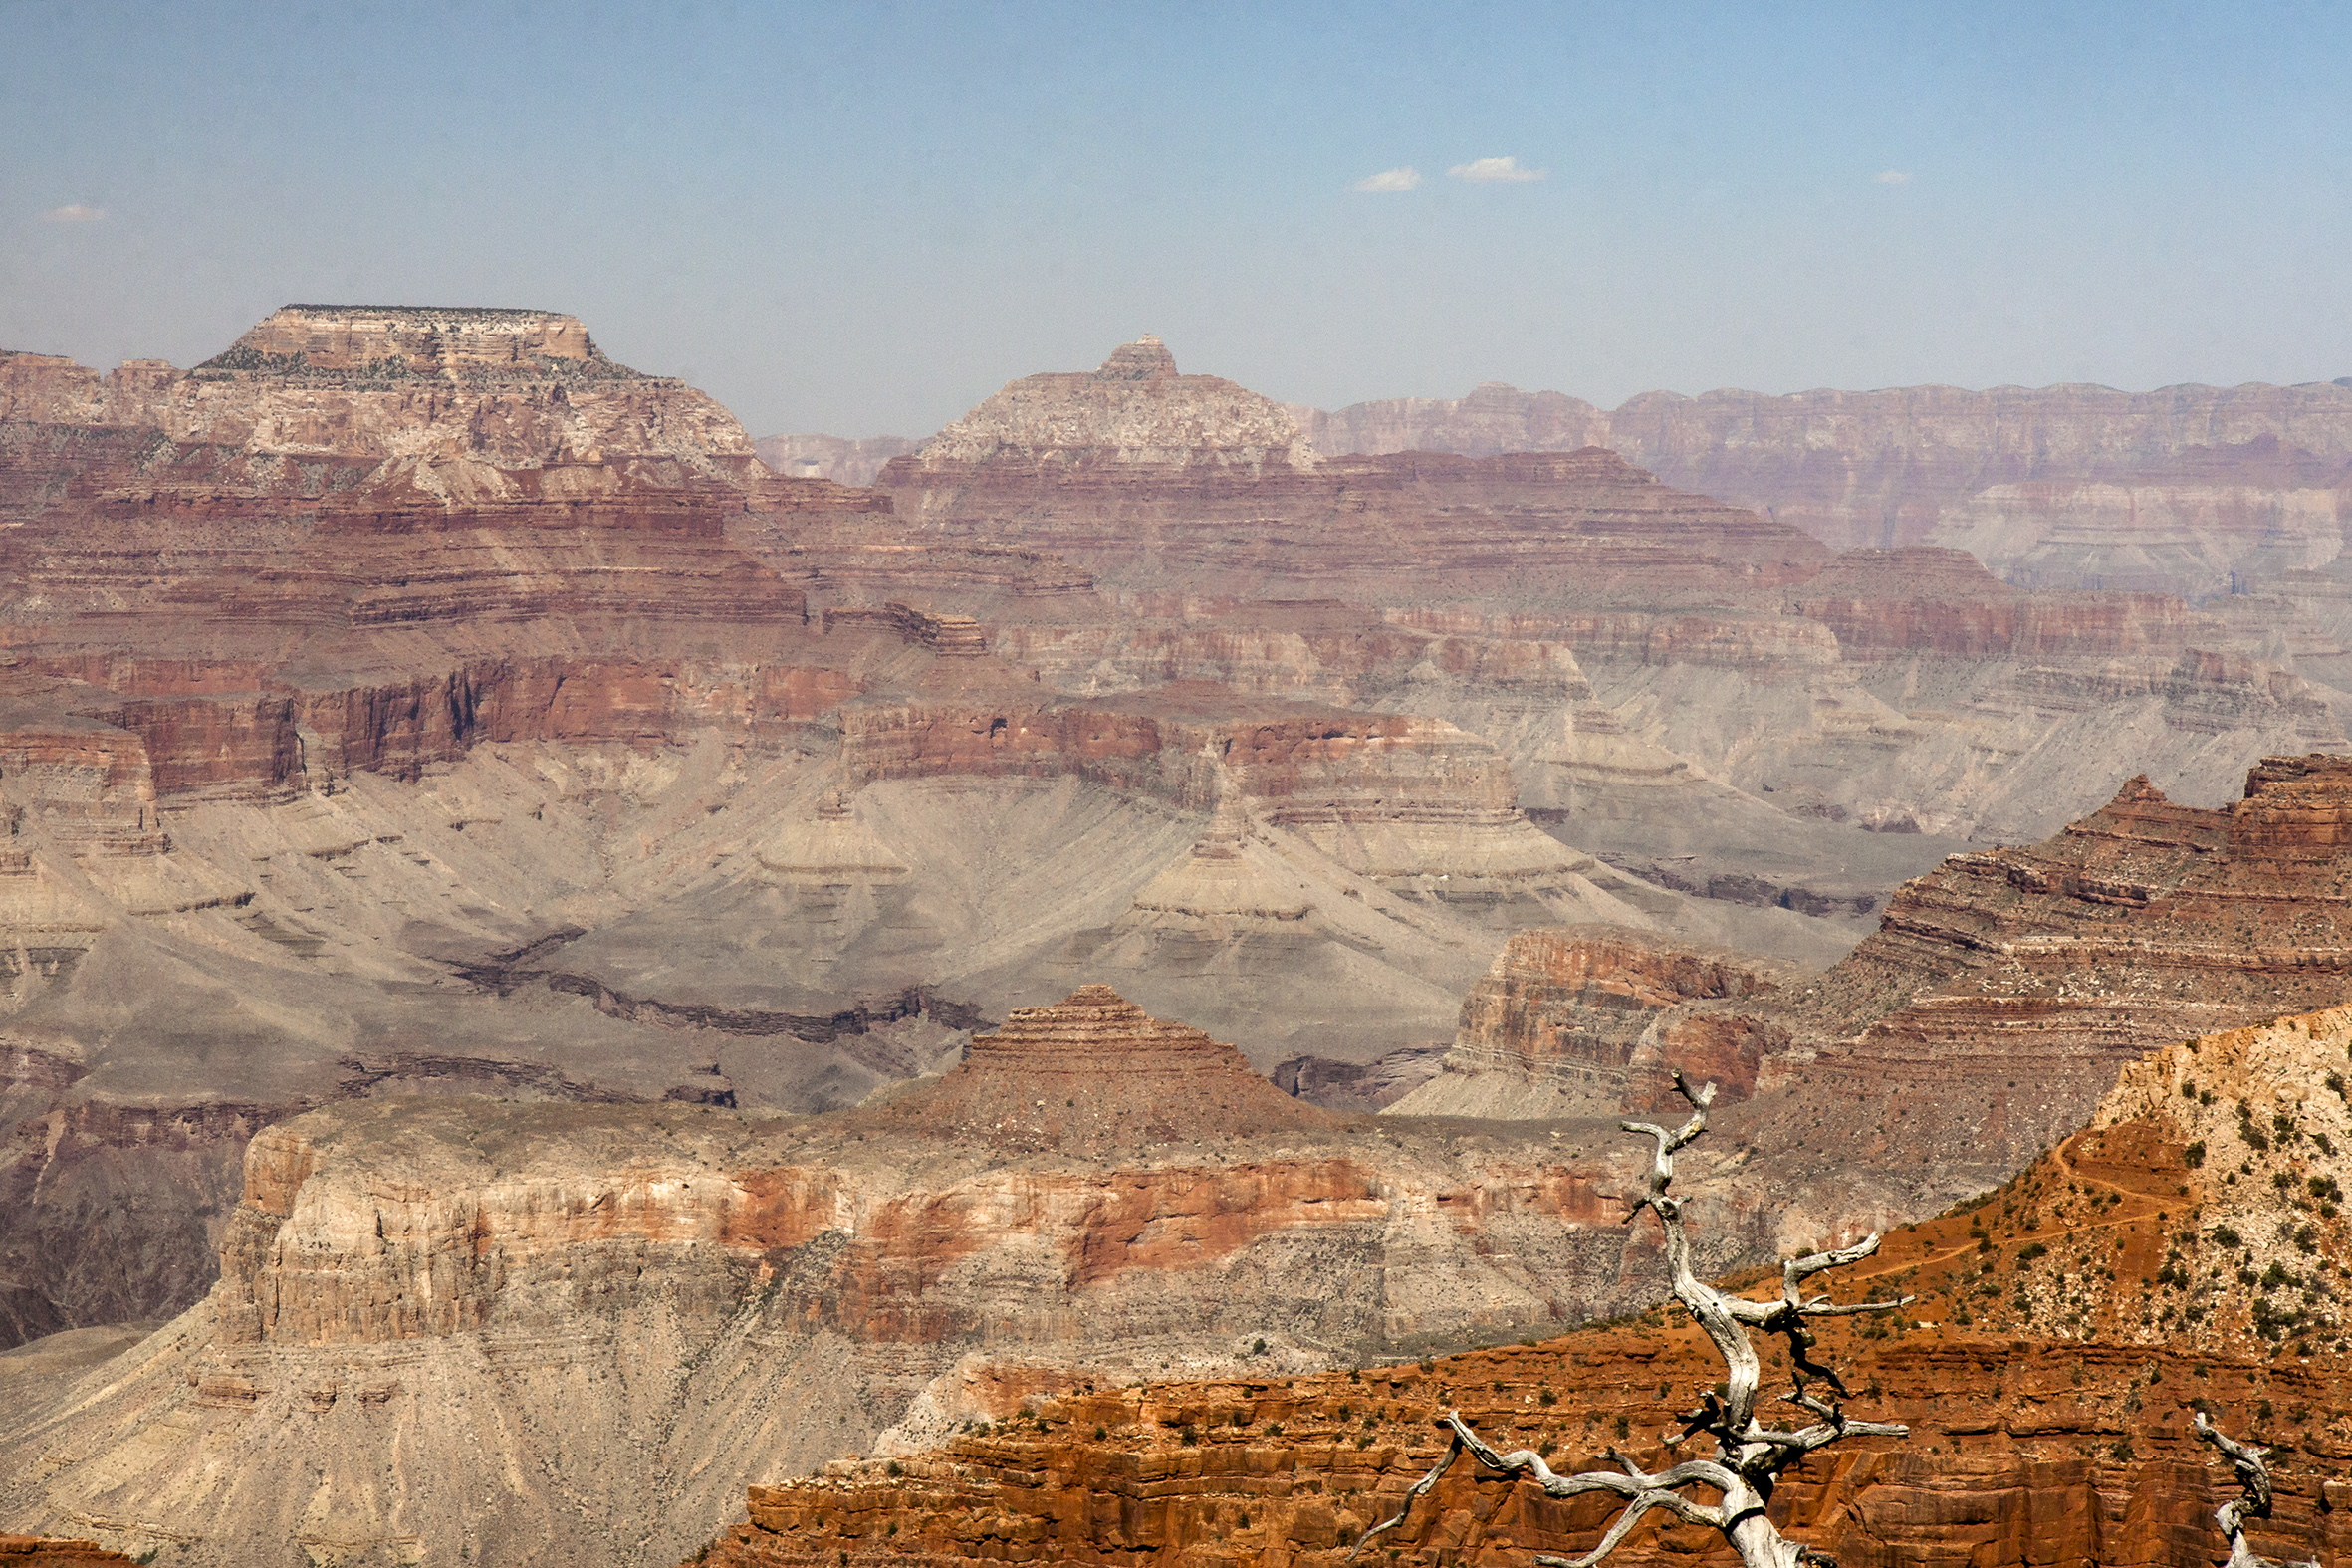 voyages-grand-canyon-usa-ouest-2012-marie-colette-becker-10